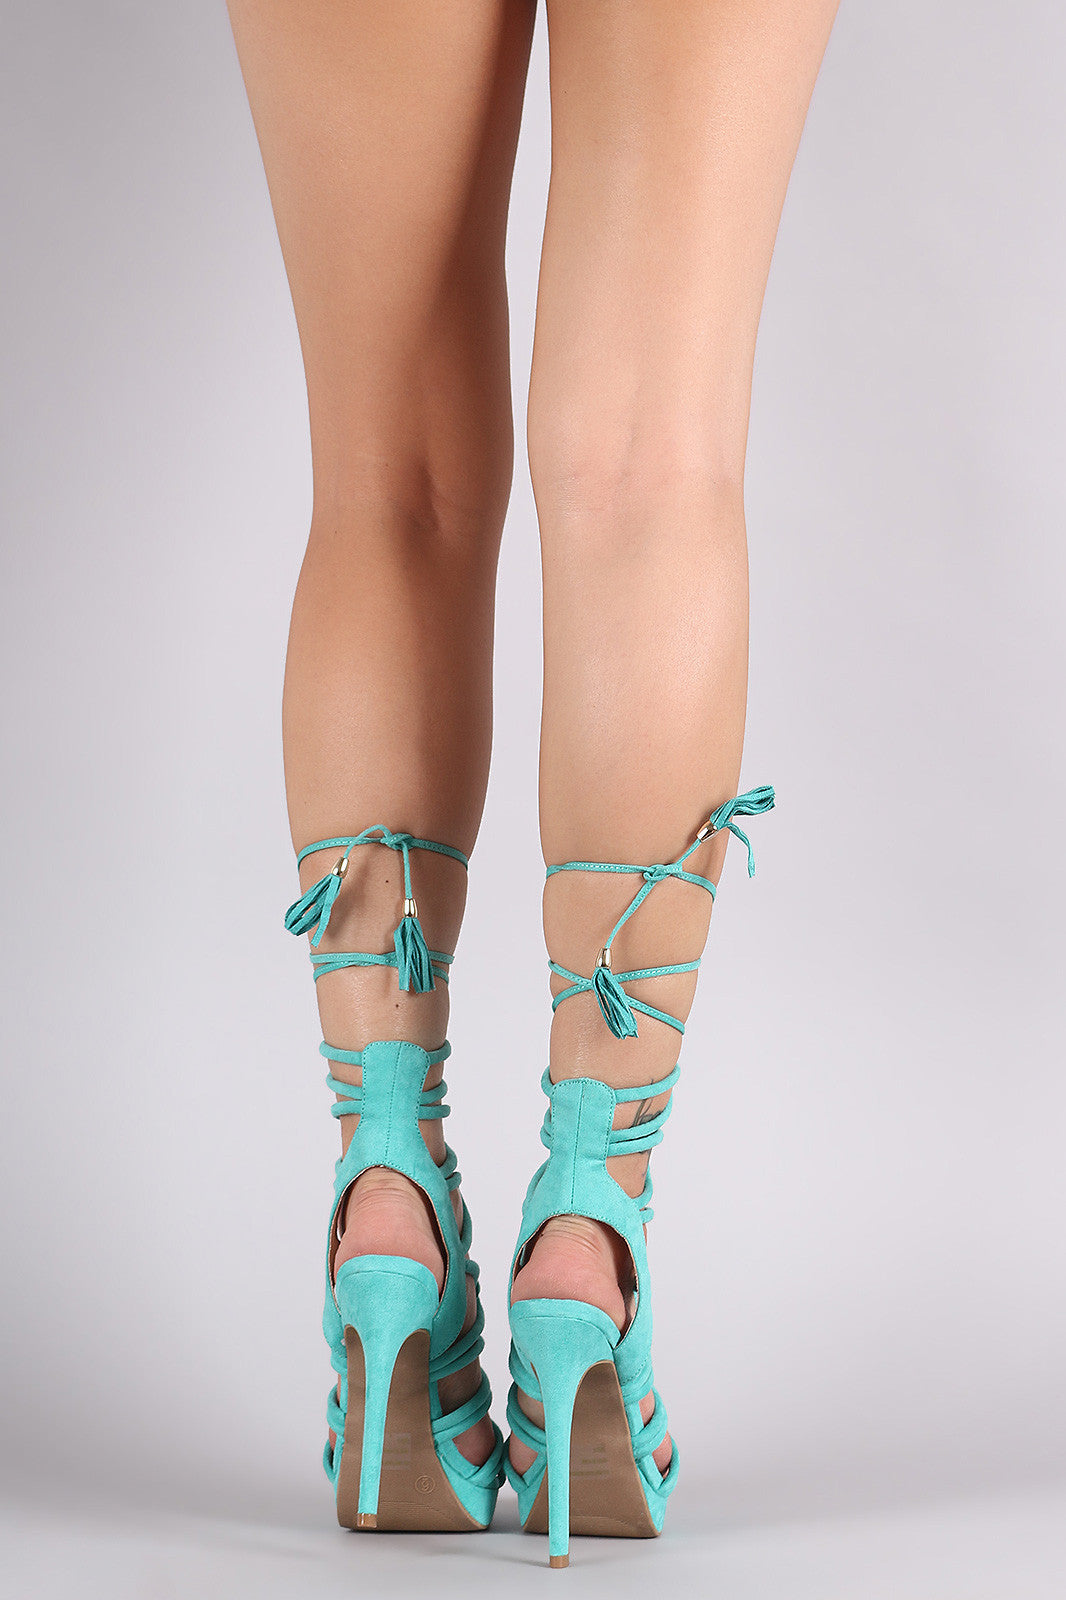 Wild Diva Lounge Suede Strappy Loop Lace-Up Platform Heel - Thick 'N' Curvy Shop - 2